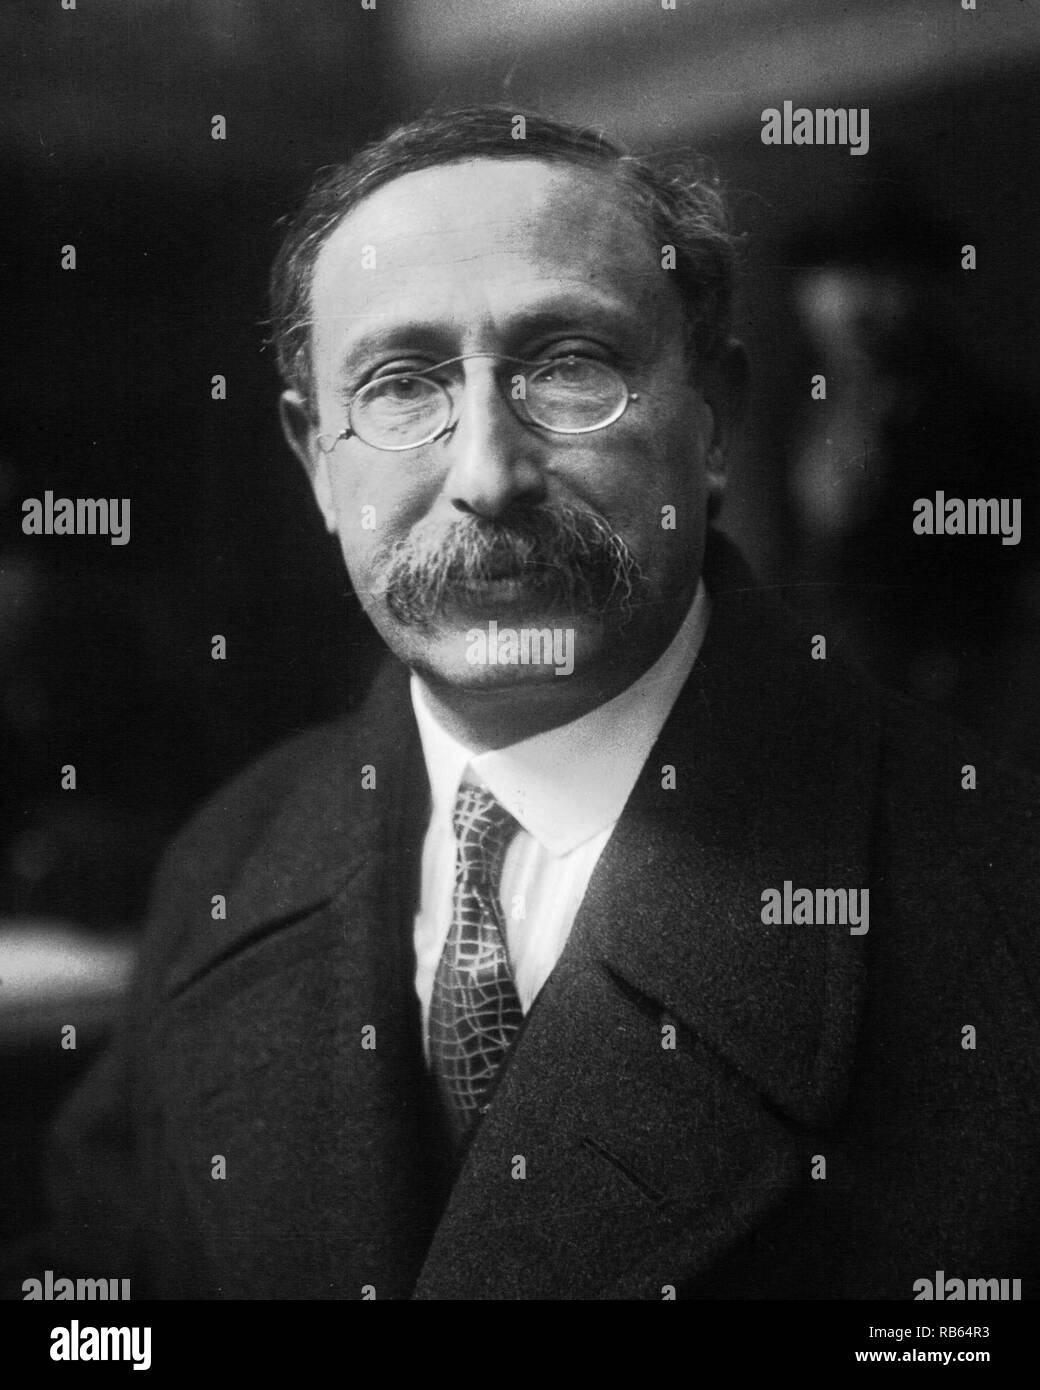 Salomon Arvid Achates Lindman (19 September 1862 - 9 December 1936) served as Prime Minister of Sweden, from 1906 to 1911 and from 1928 to 1930 - Stock Image